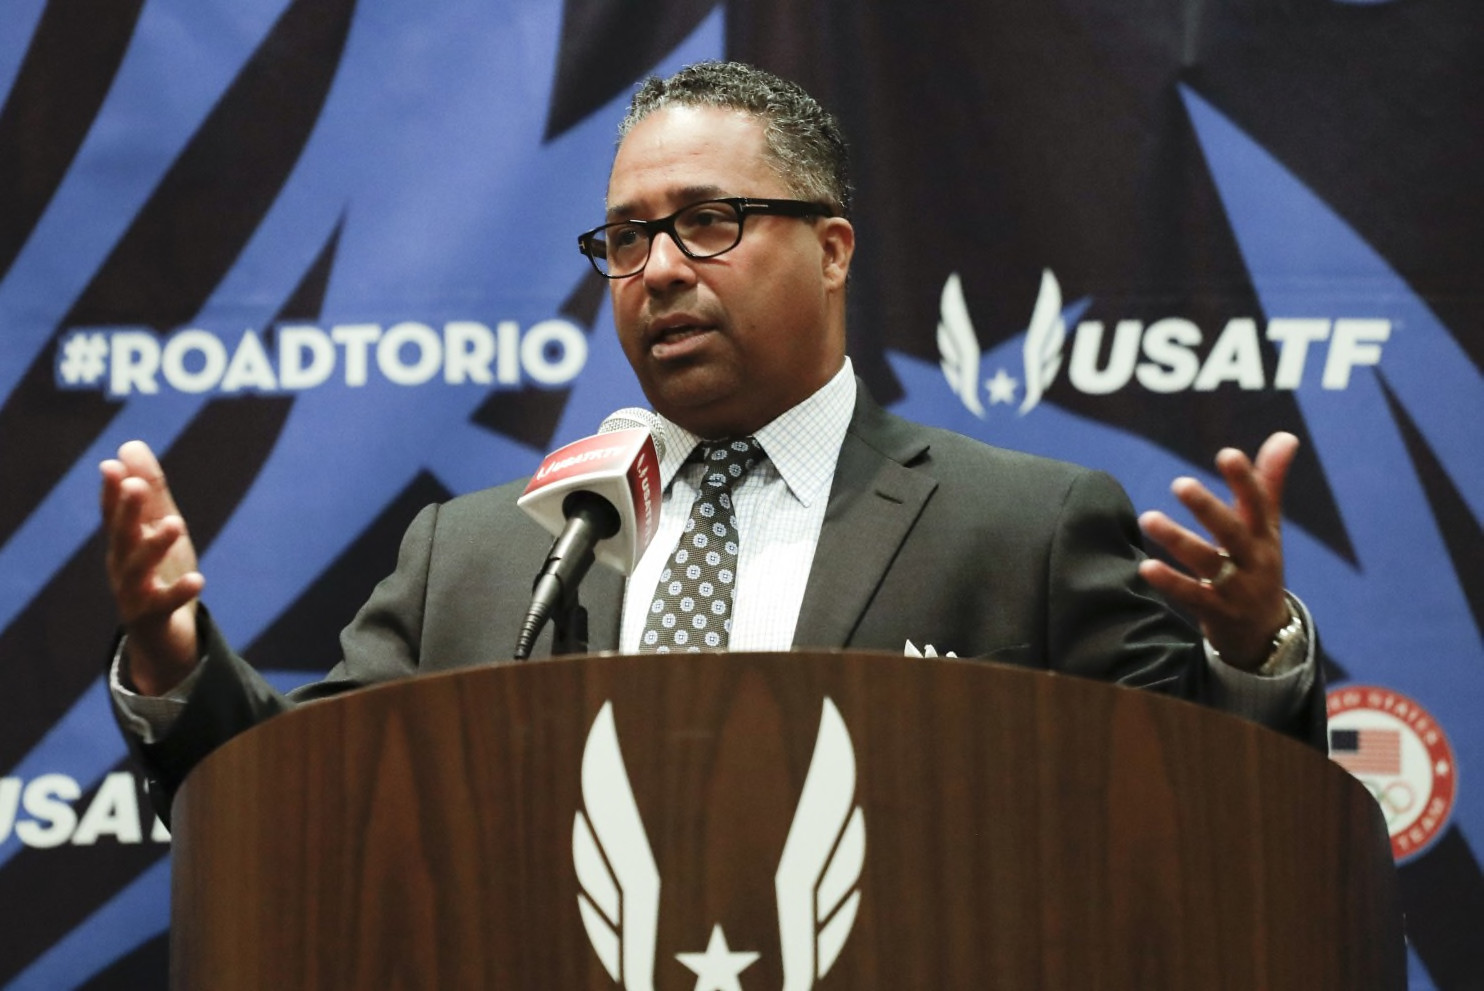 USA Track and Field lays off seven and CEO takes a 20% pay cut